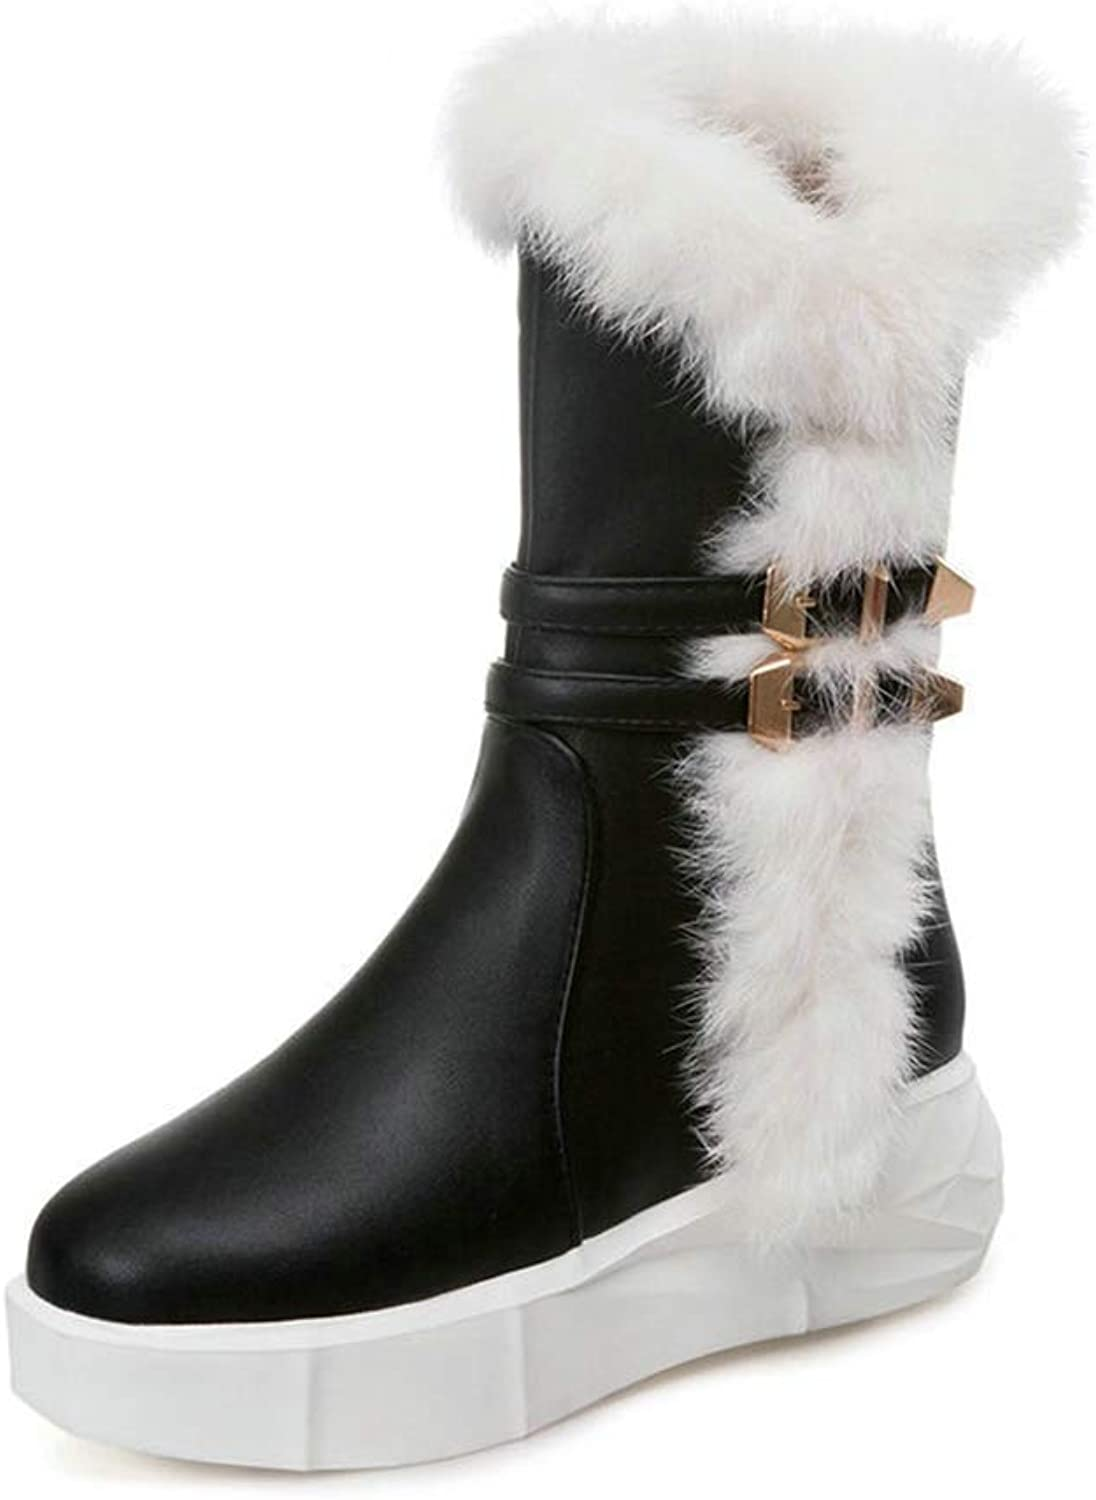 T-JULY Winter Warm Plush Mid Calf Snow Boots Platform Side Zipper Comfortable Flat with shoes Woman White Black Pink